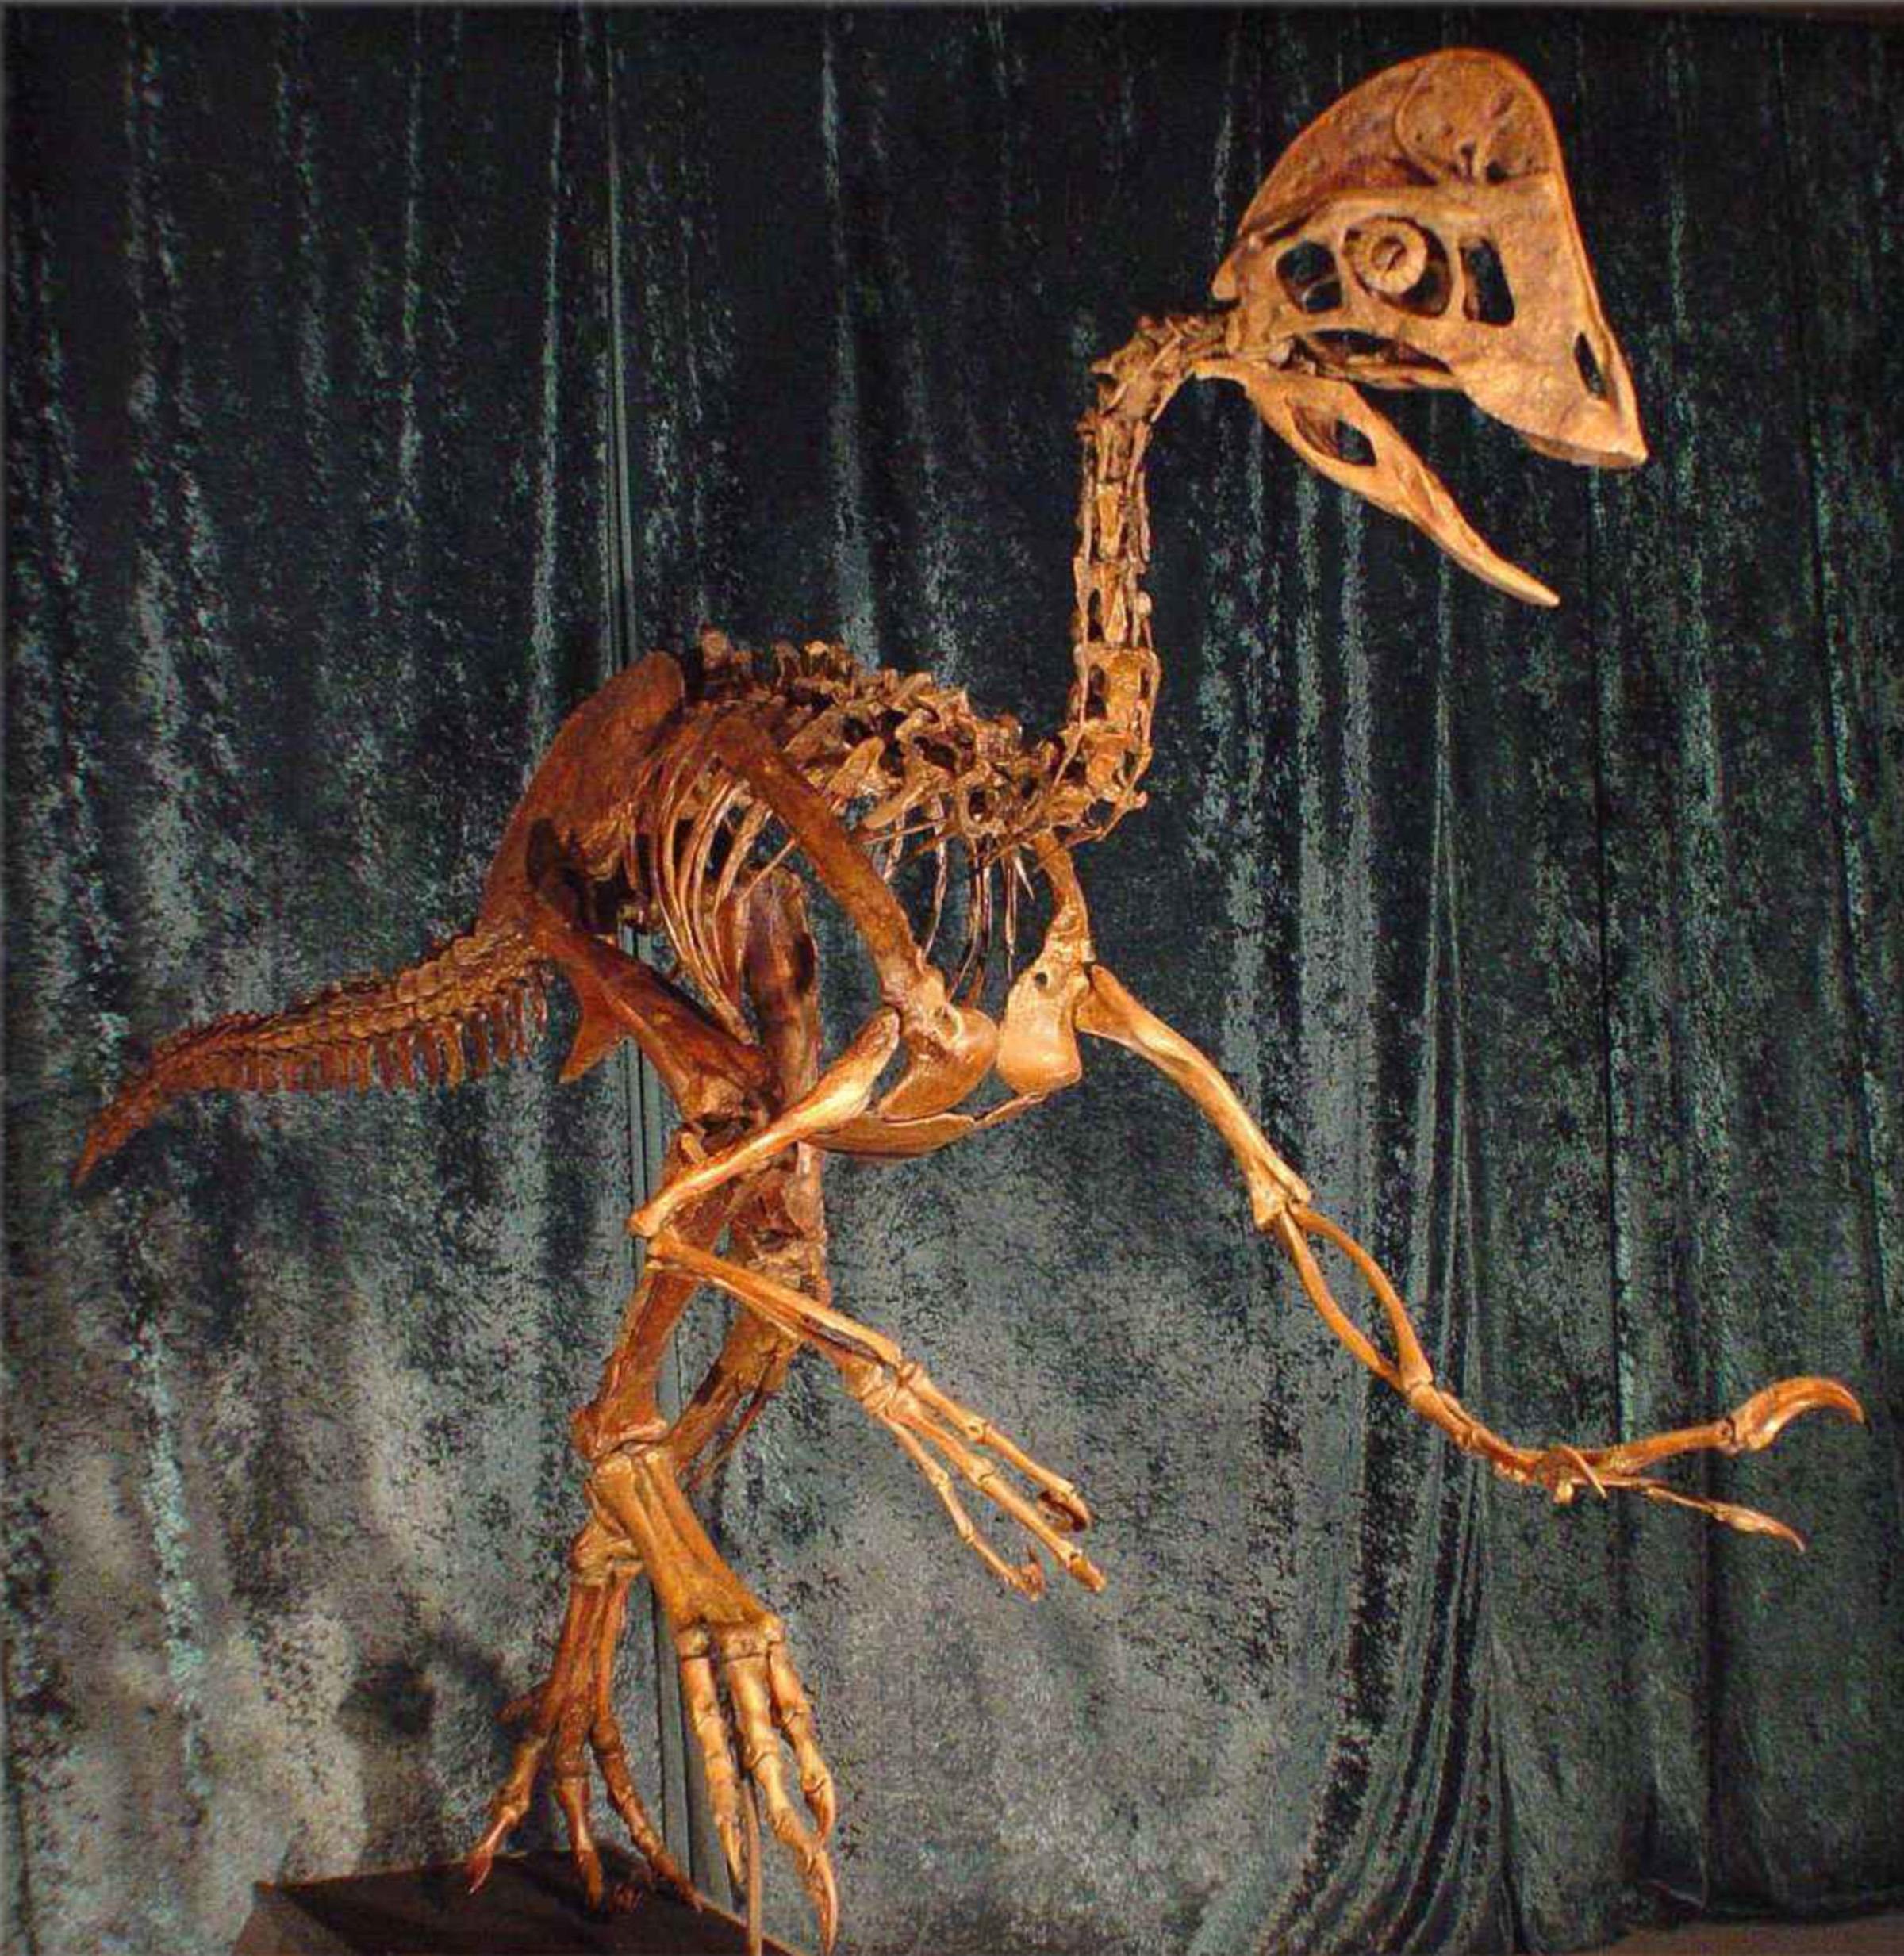 This reconstruction depicts the Anzu wyliei, a birdlike dinosaur that roamed western North America 66 million years ago.